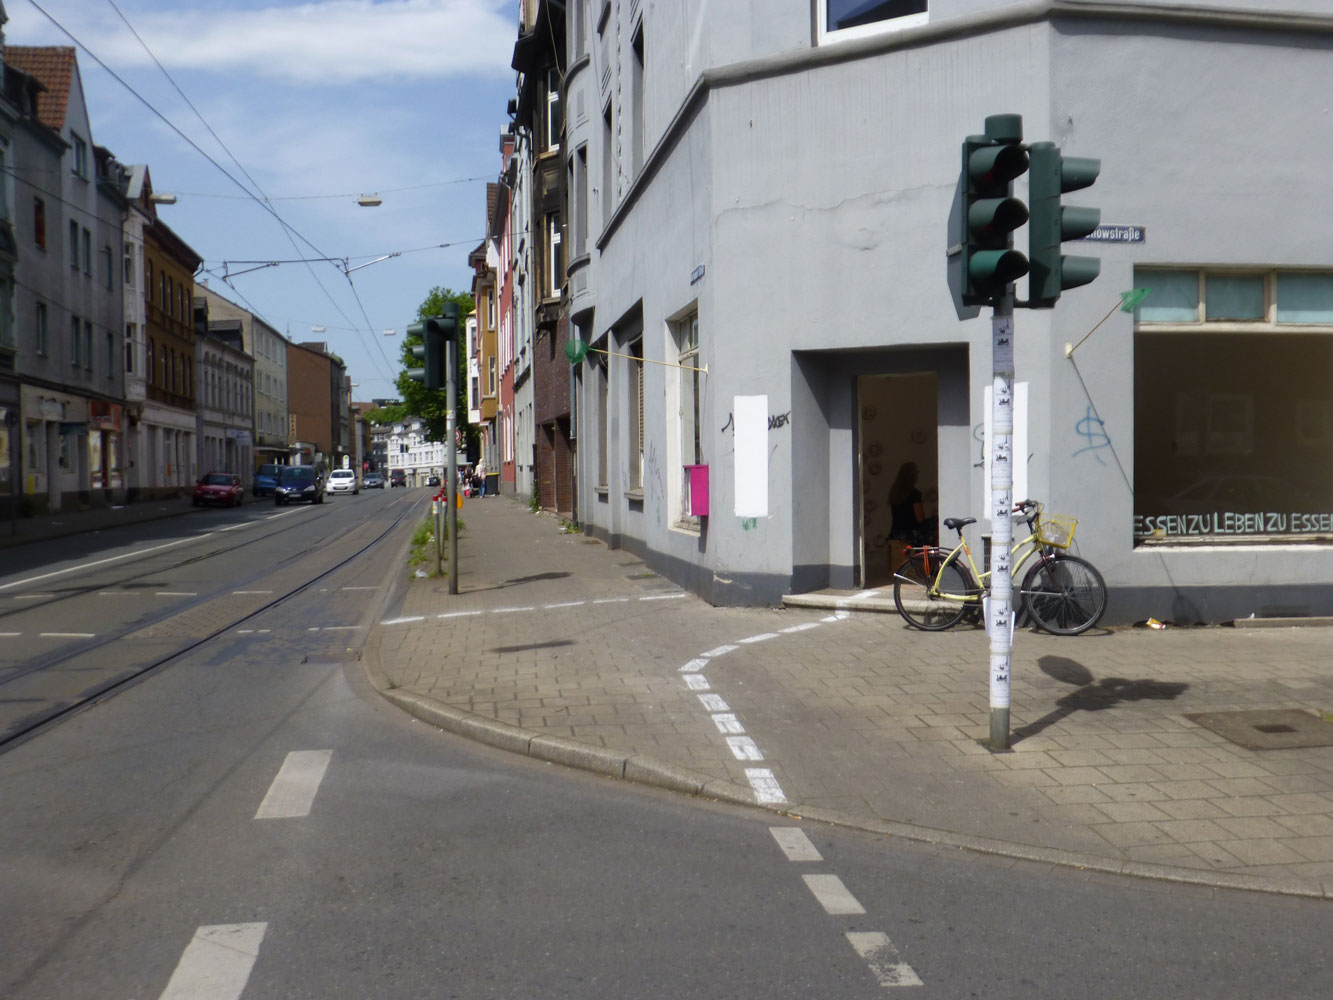 Question center - A two-week residency in the Bochumer Strasse (Gelsenkirchen)